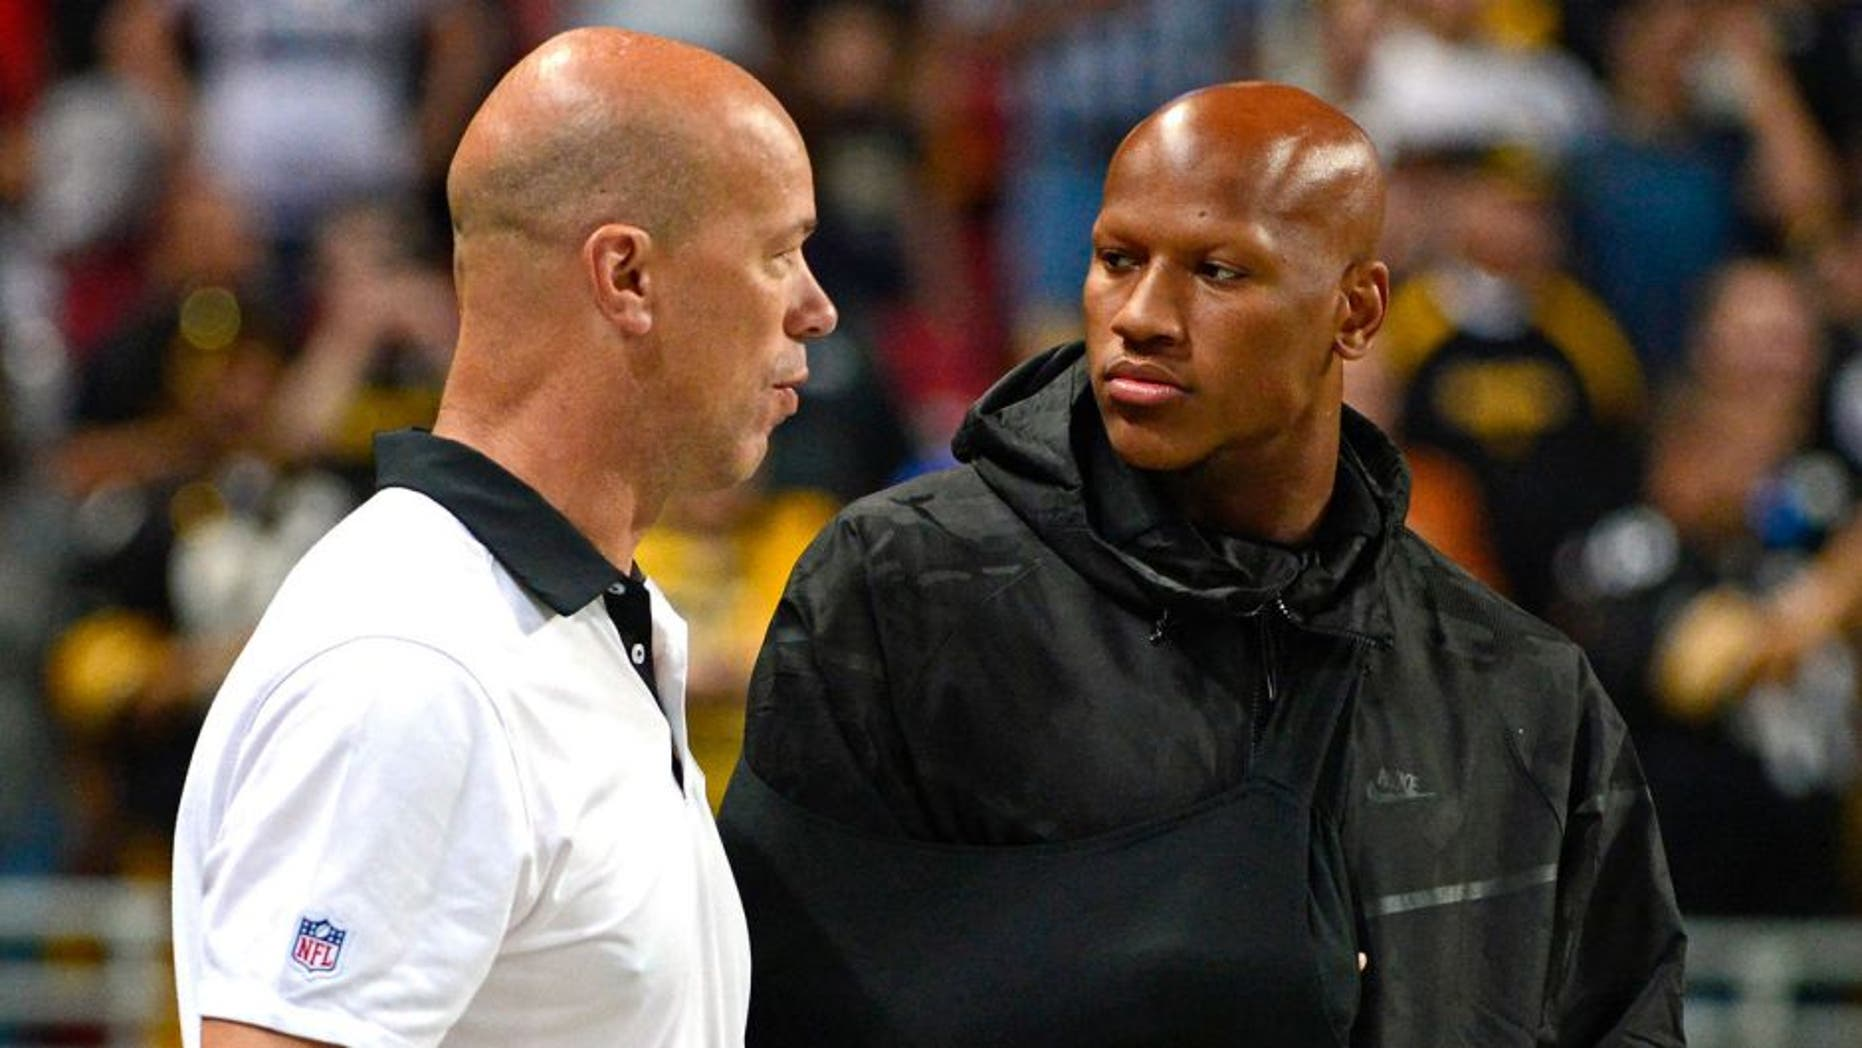 Sep 27, 2015; St. Louis, MO, USA; Pittsburgh Steelers inside linebacker Ryan Shazier (50) talks with a staff member before a game against the St. Louis Rams at the Edward Jones Dome. Steelers defeated the Rams 12-6. Mandatory Credit: Jeff Curry-USA TODAY Sports